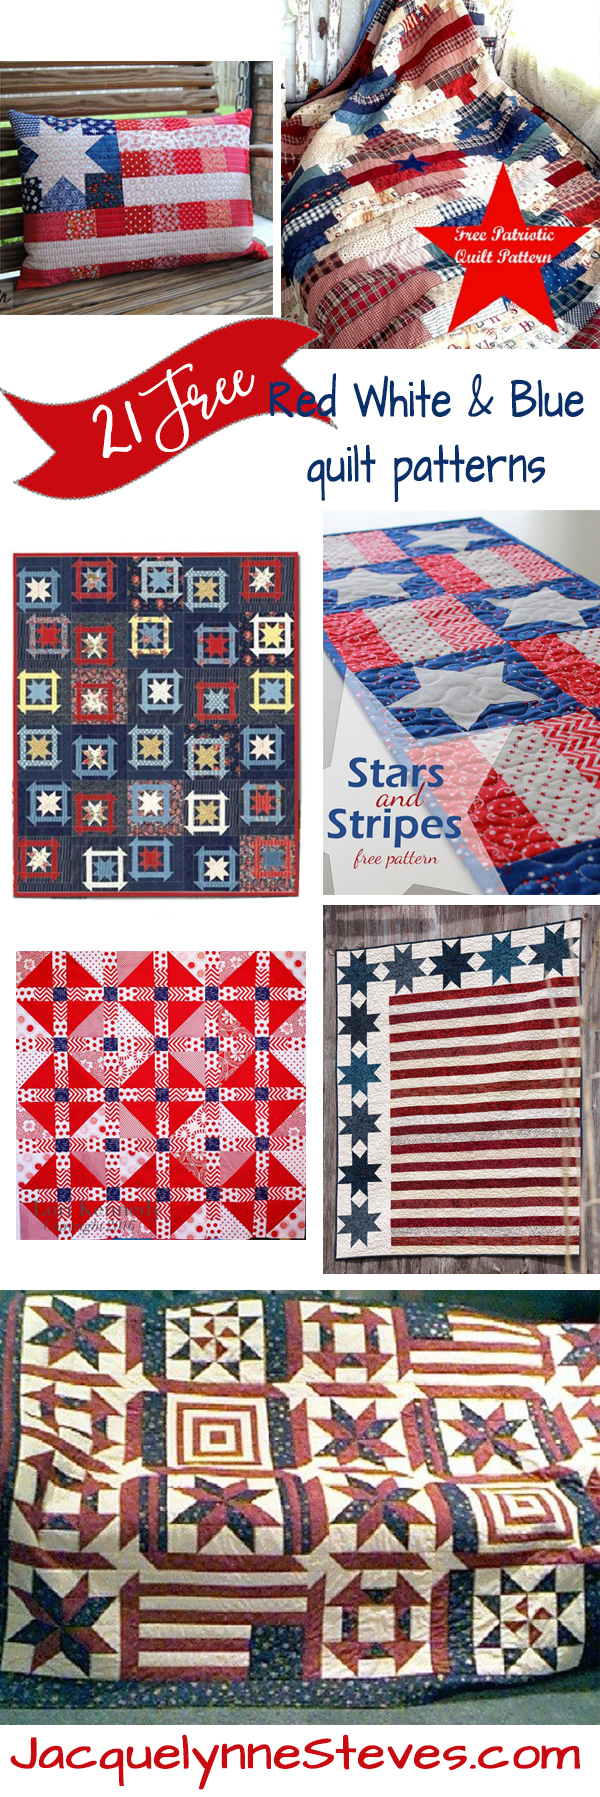 21 Free Red White And Blue Quilt Patterns Jacquelynne Steves